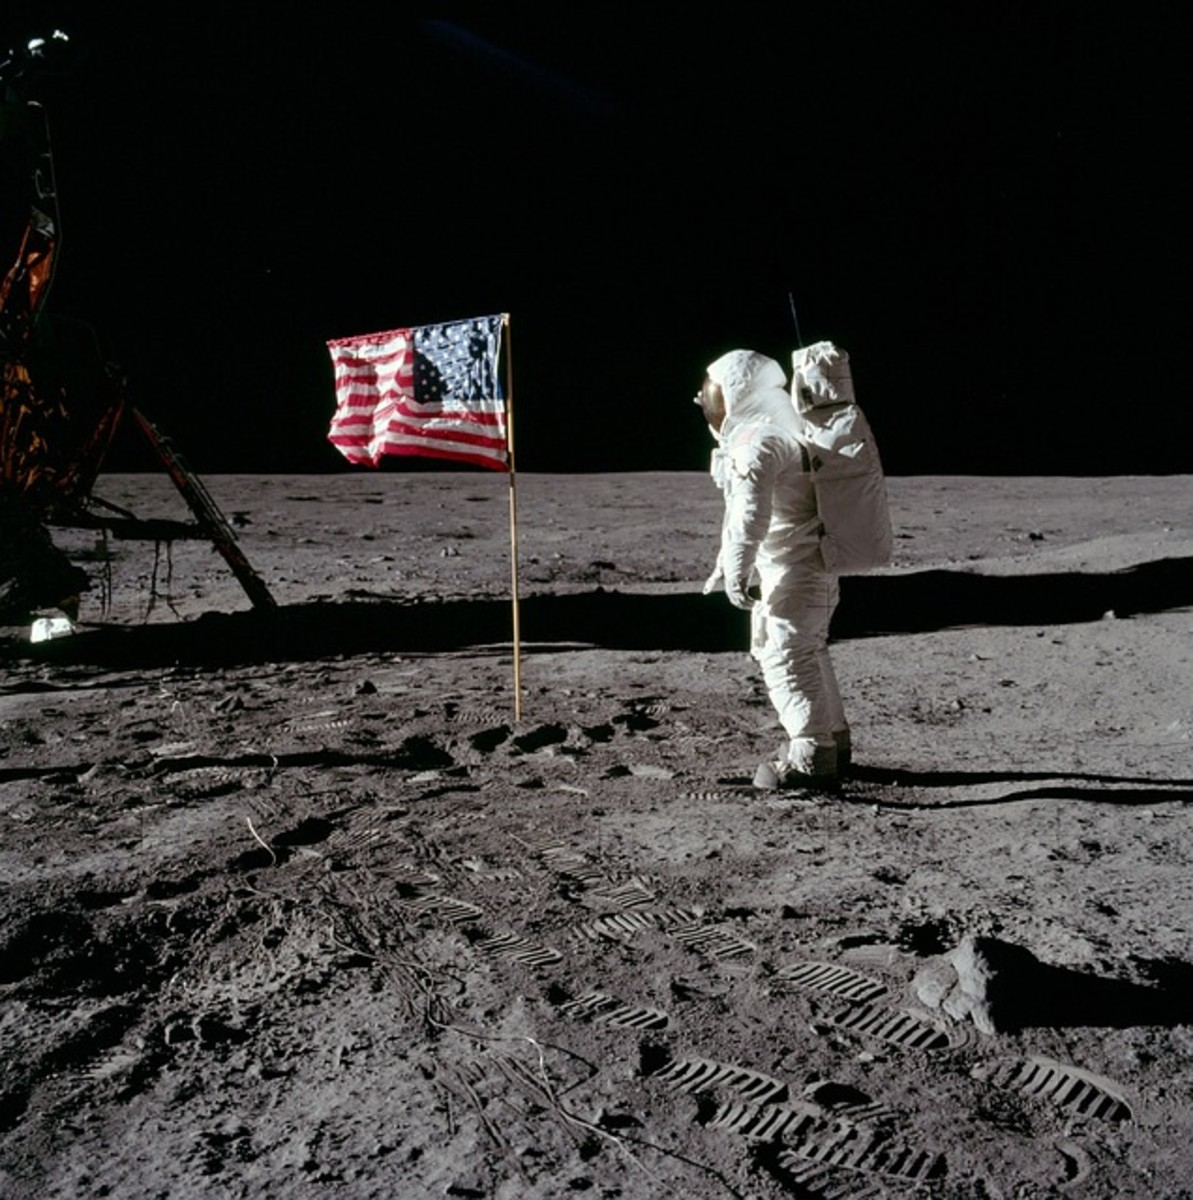 Buzz Aldrin on the moon in 1969 with Apollo 11. Aldrin is a symbol of the ongoing public and private Mission to Mars.